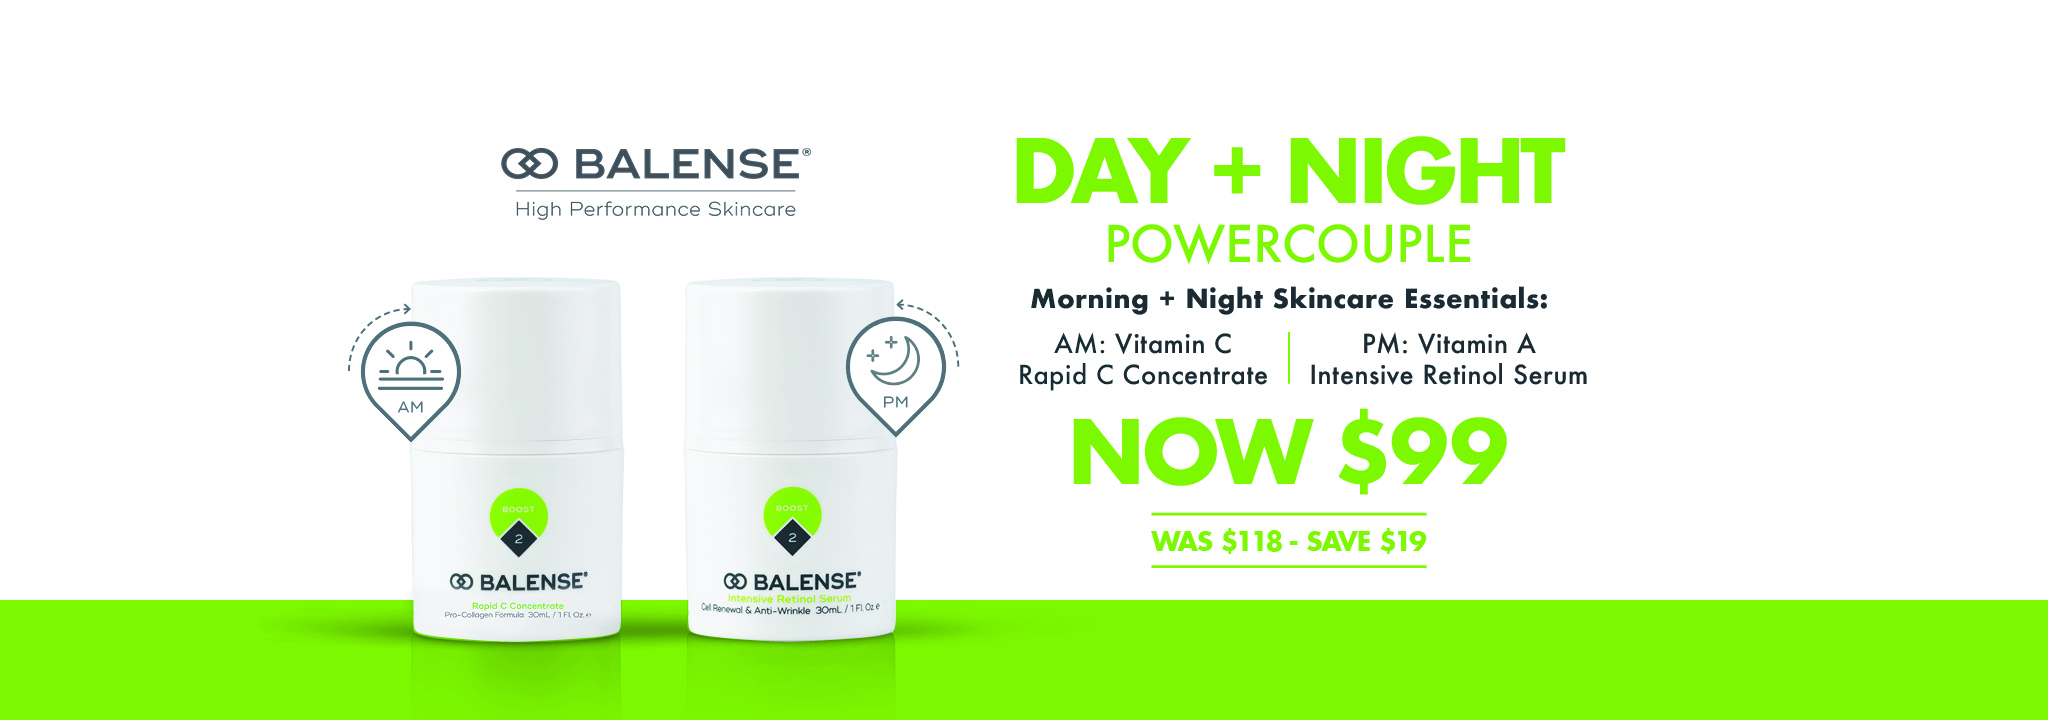 Balense September Promo